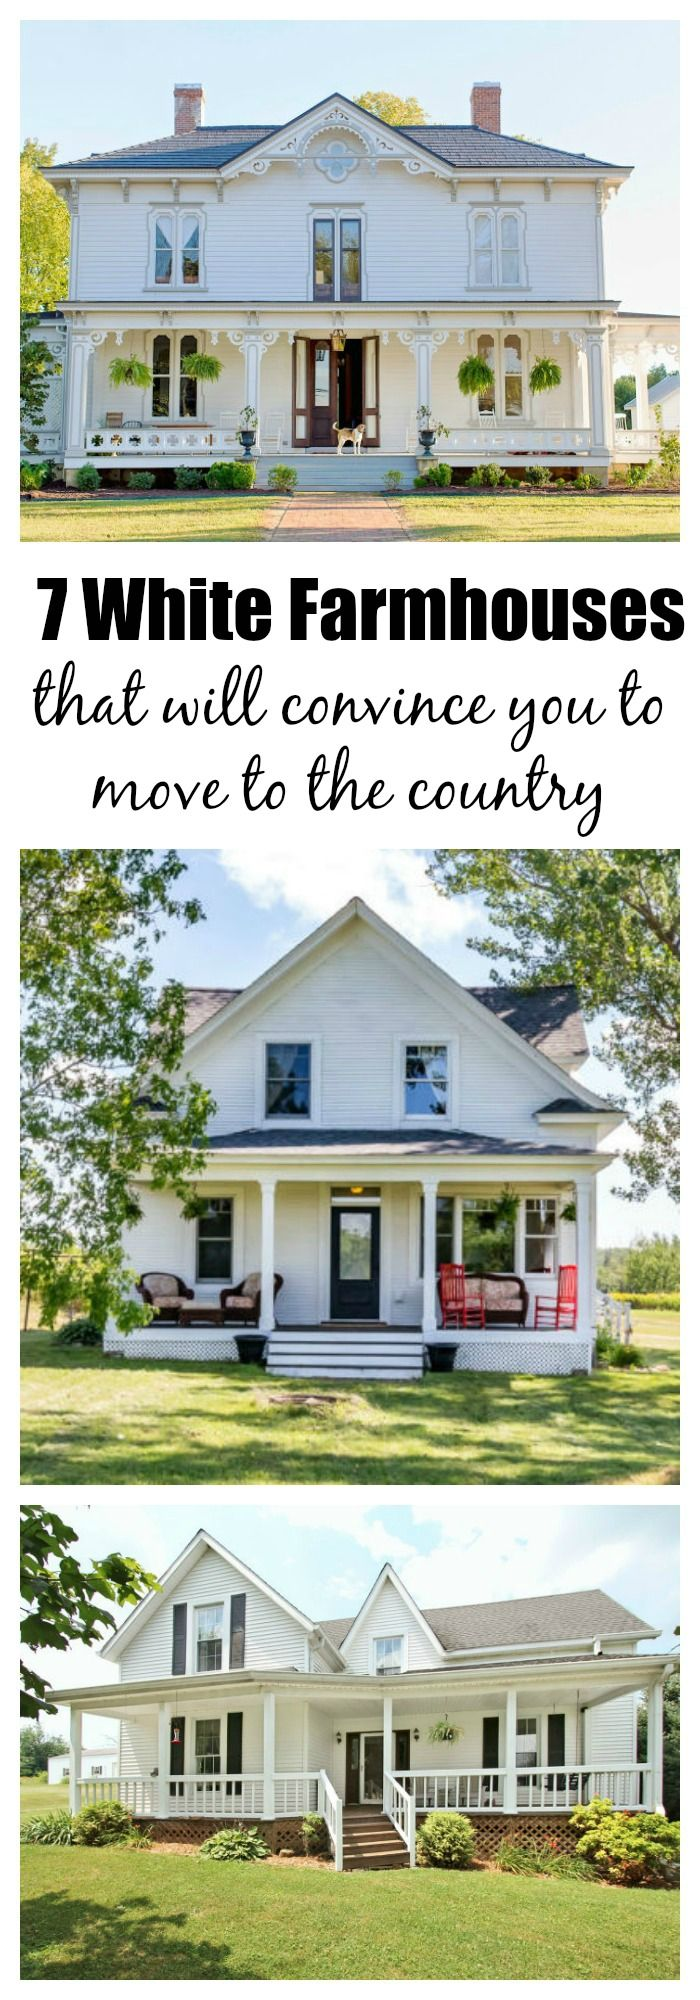 best 20+ white farm houses ideas on pinterest | cute small houses